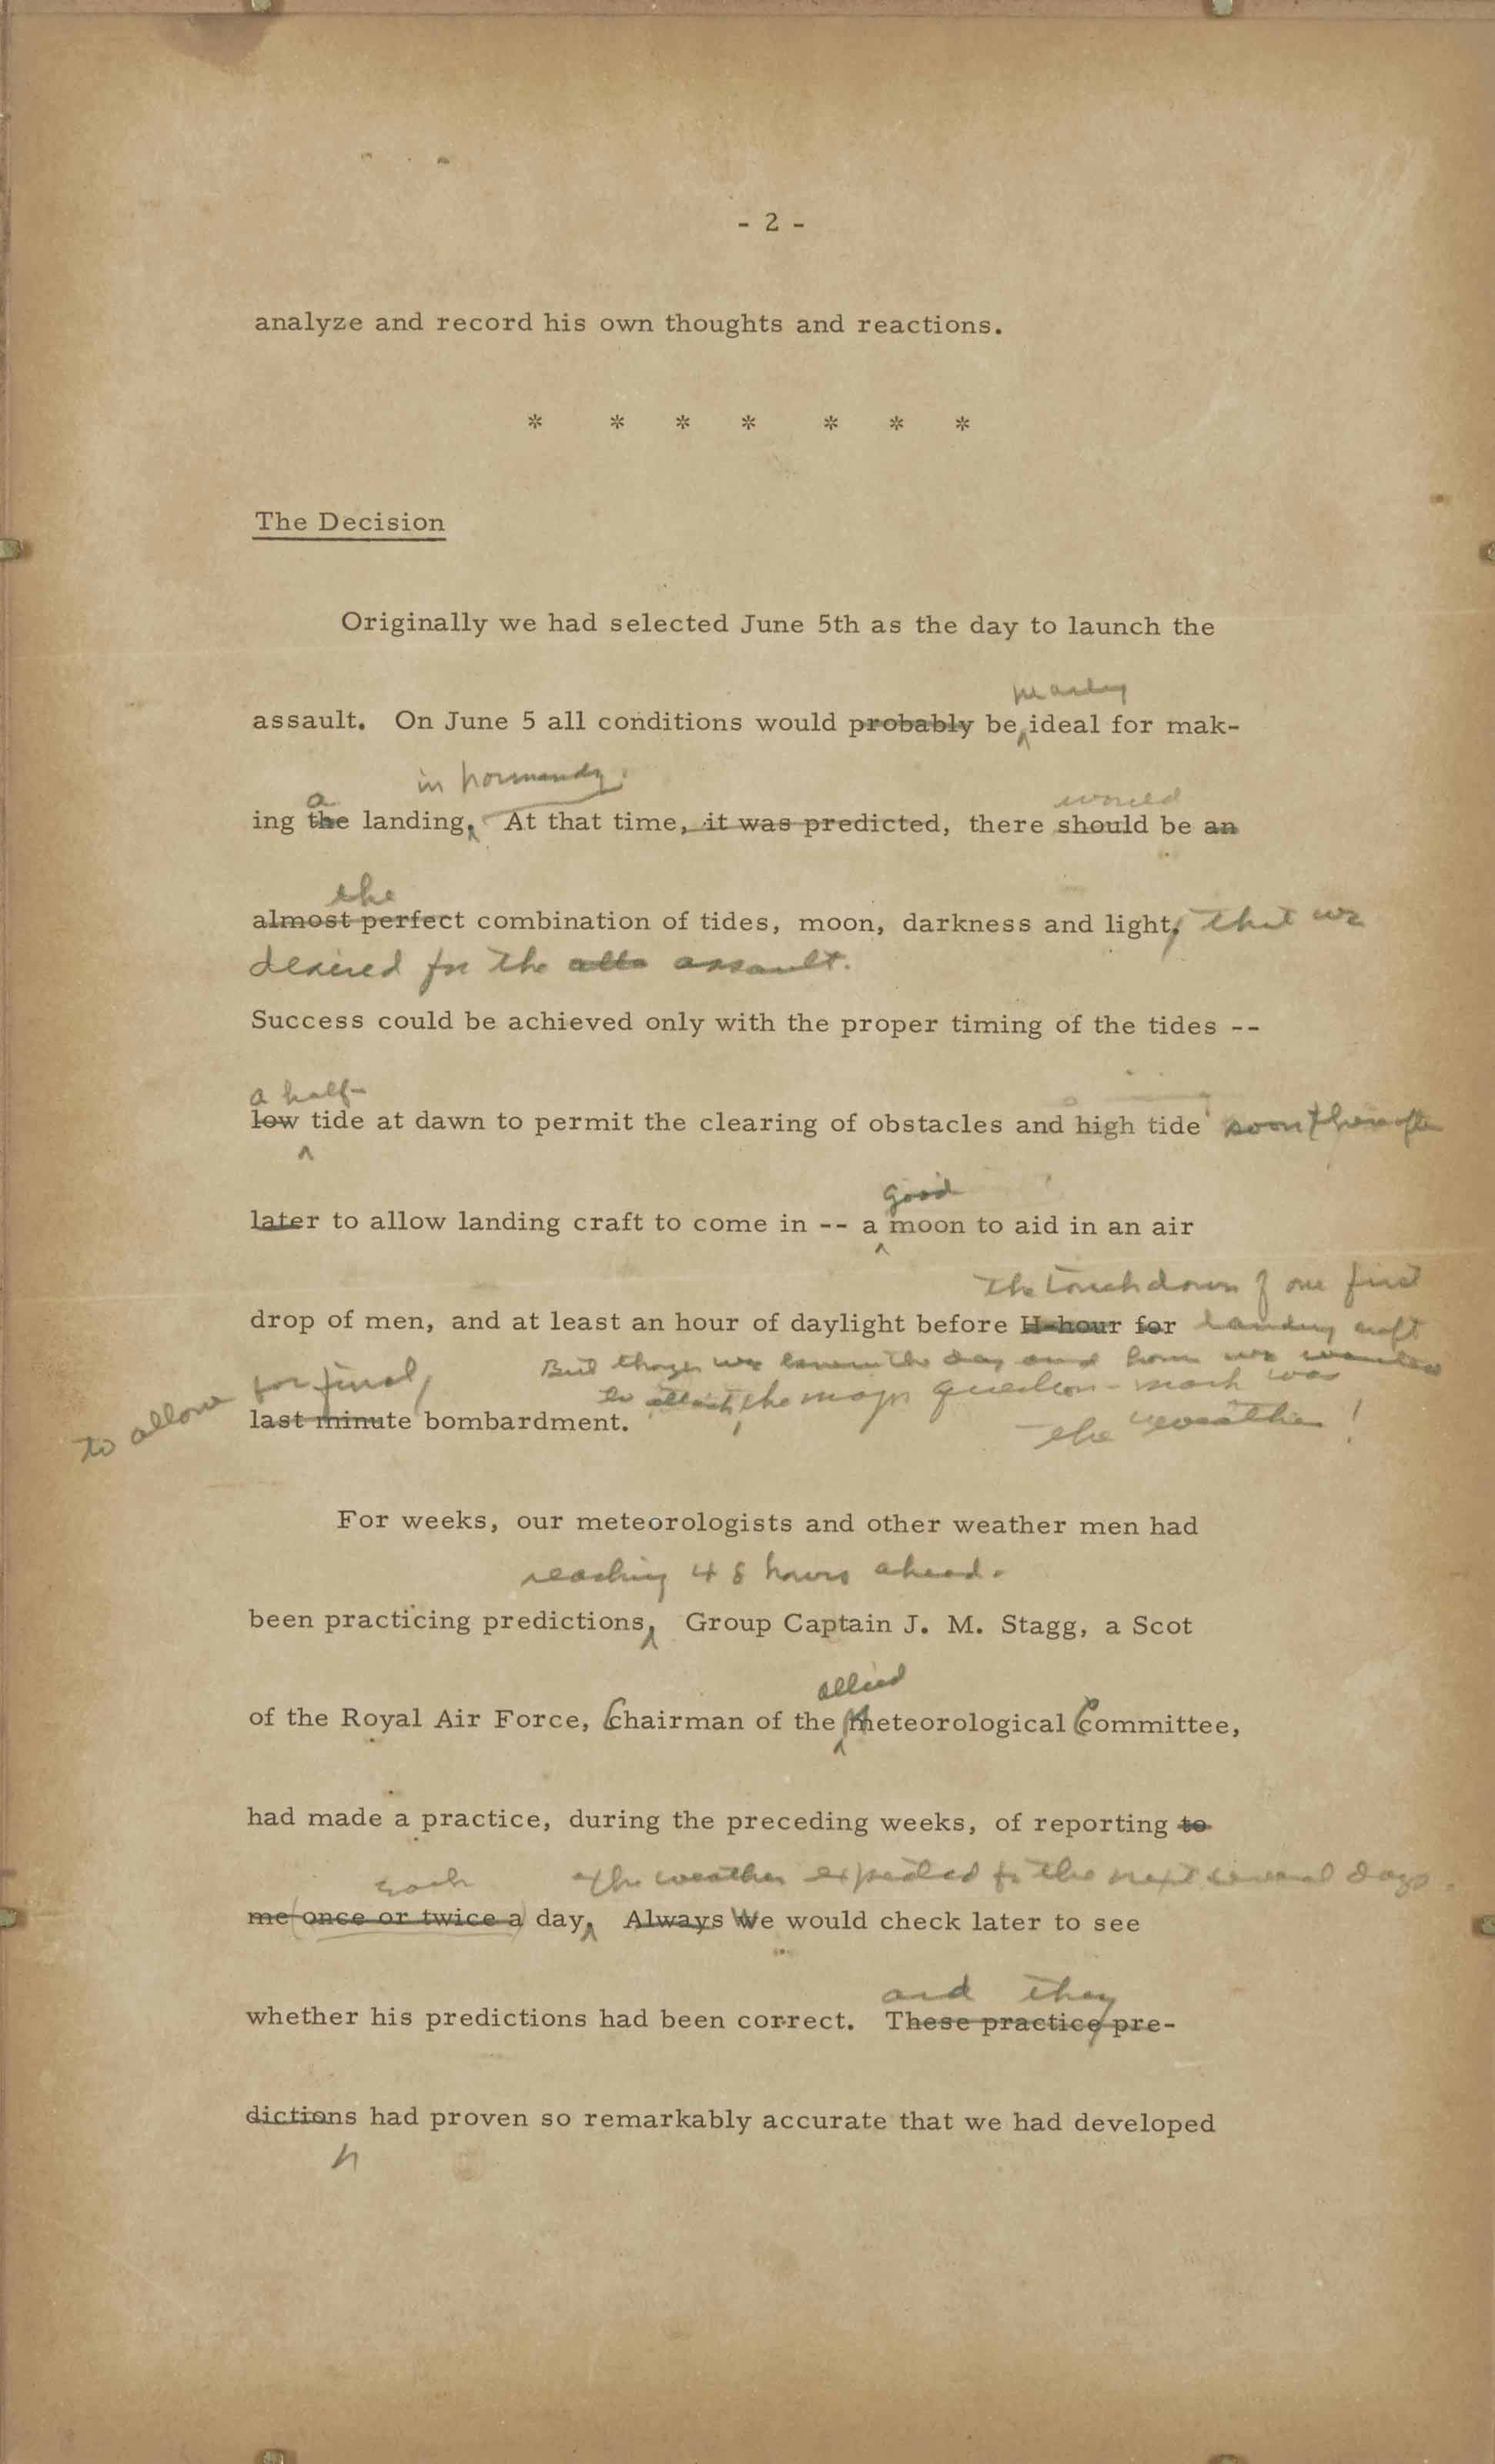 EISENHOWER, Dwight (1890-1969). Typescript with autograph emendations and additions, 'The Decision', [1964], part of an article written for a special number of Paris Match in honour of the 20th anniversary of D-Day, explaining the grounds for the last-minute postponement of the landings: 'Originally we had selected June 5th as the day to launch the assault ... Success could be achieved only with the proper timing of the tides -- a half-tide at dawn to permit the clearing of obstacles and high tide soon thereafter to allow landing craft to come in -- a good mooon to aid in an air drop of men, and at least half an hour of daylight before the touchdown of our first landing craft to allow for final bombardment', one page, folio (browning)